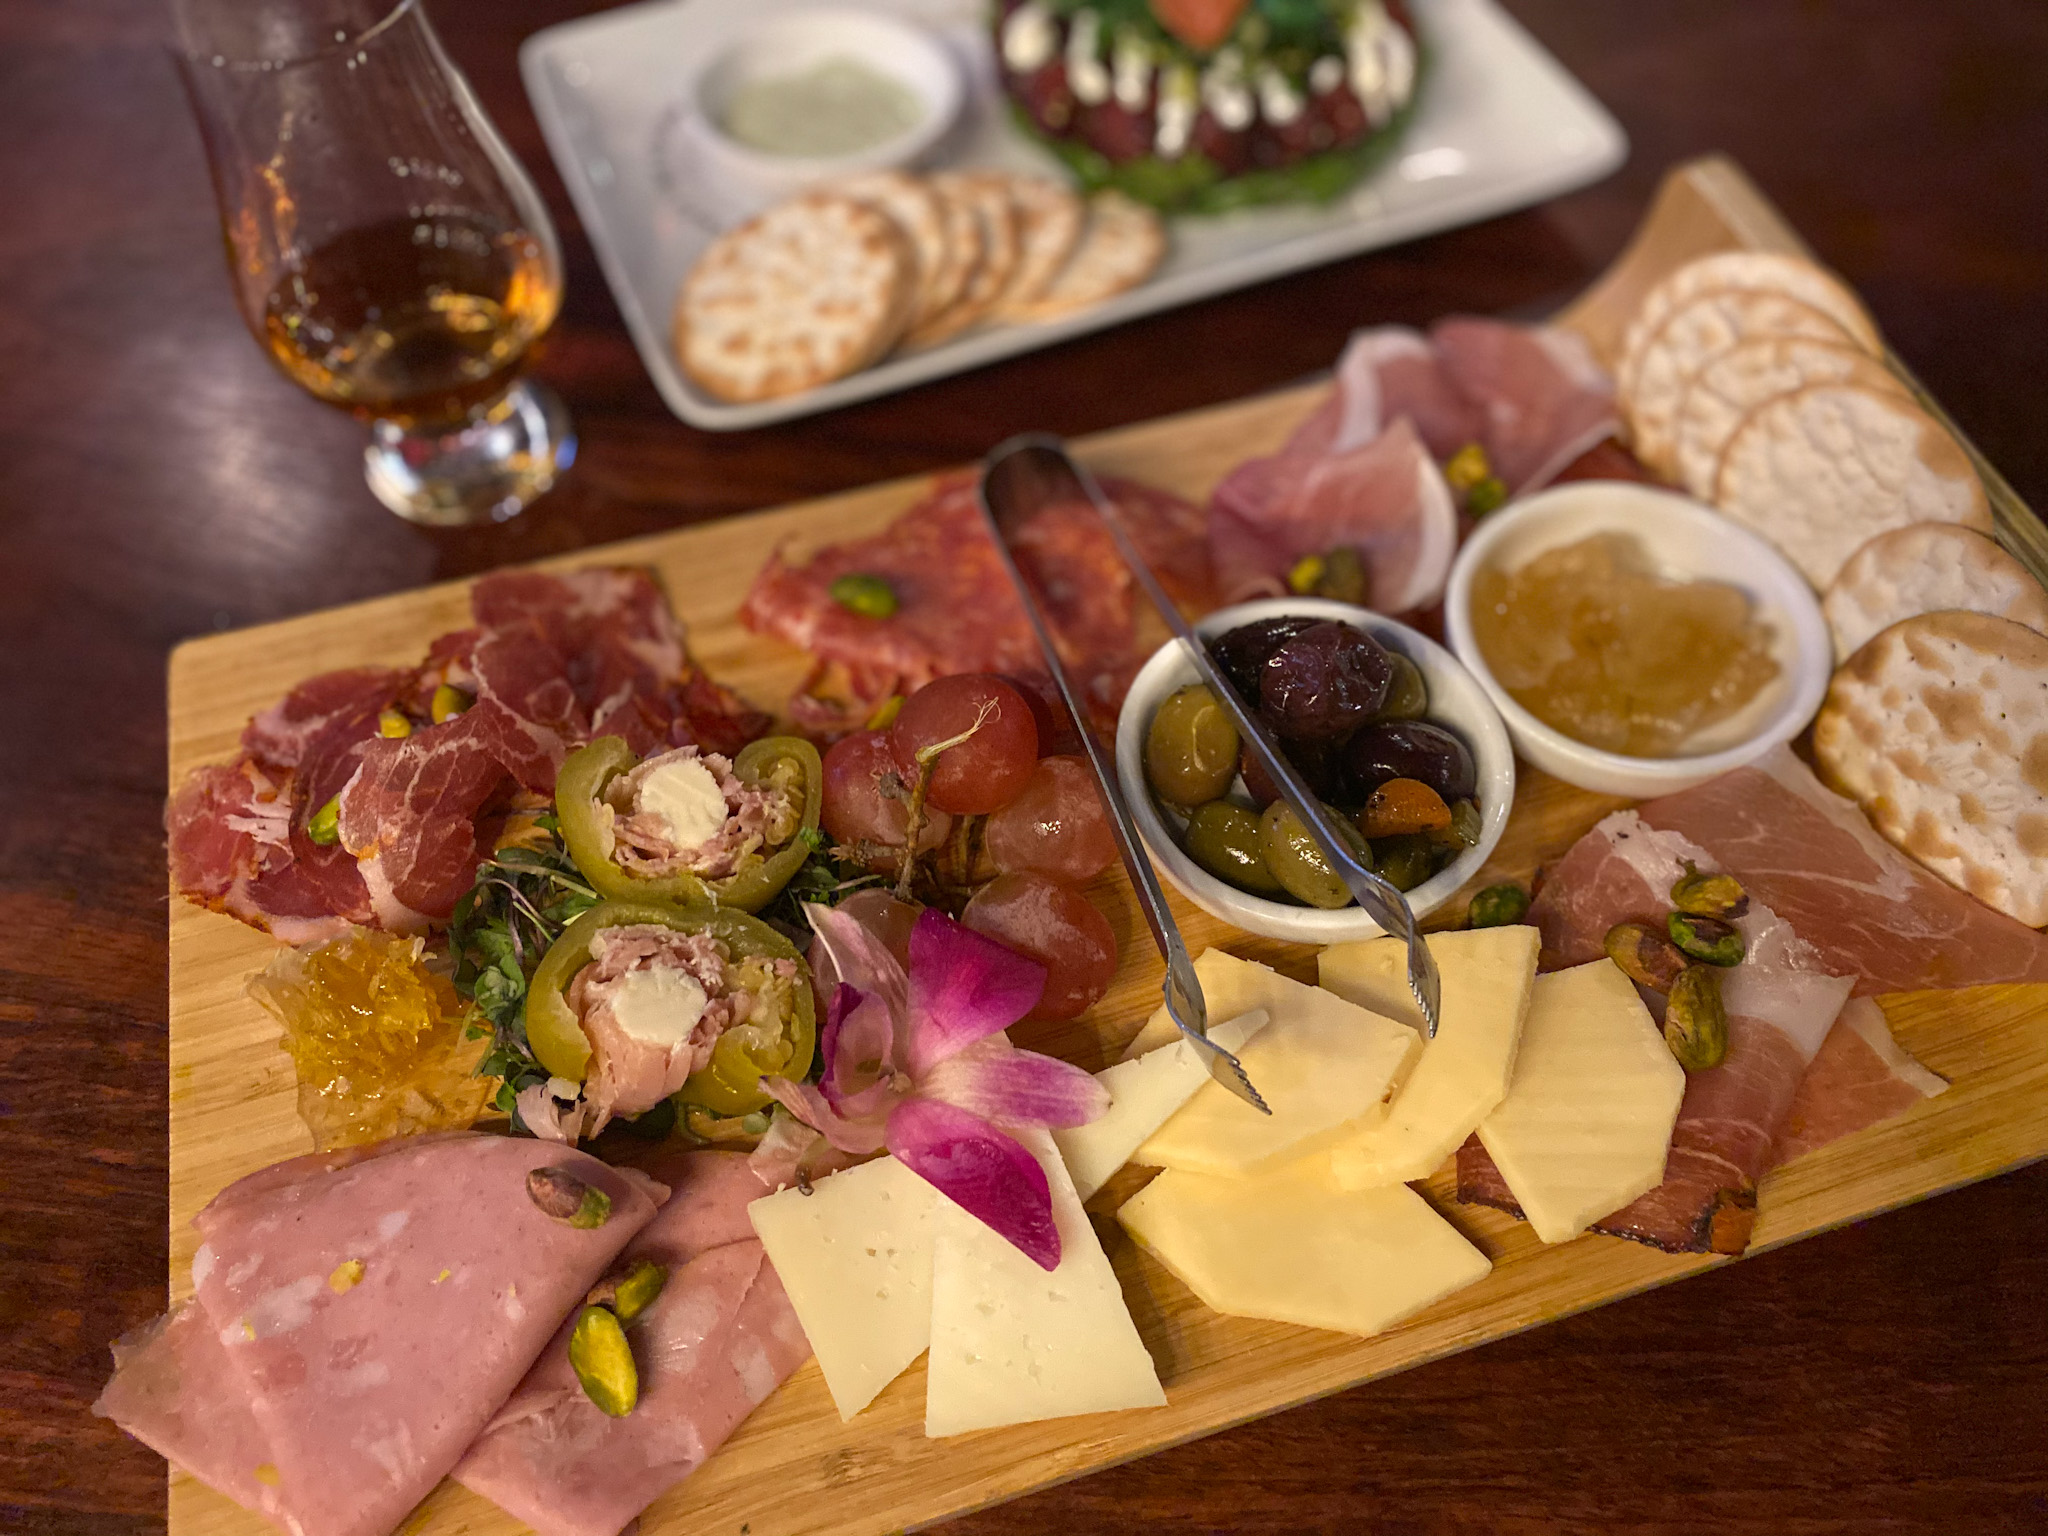 Charcuterie board at Flute and Dram